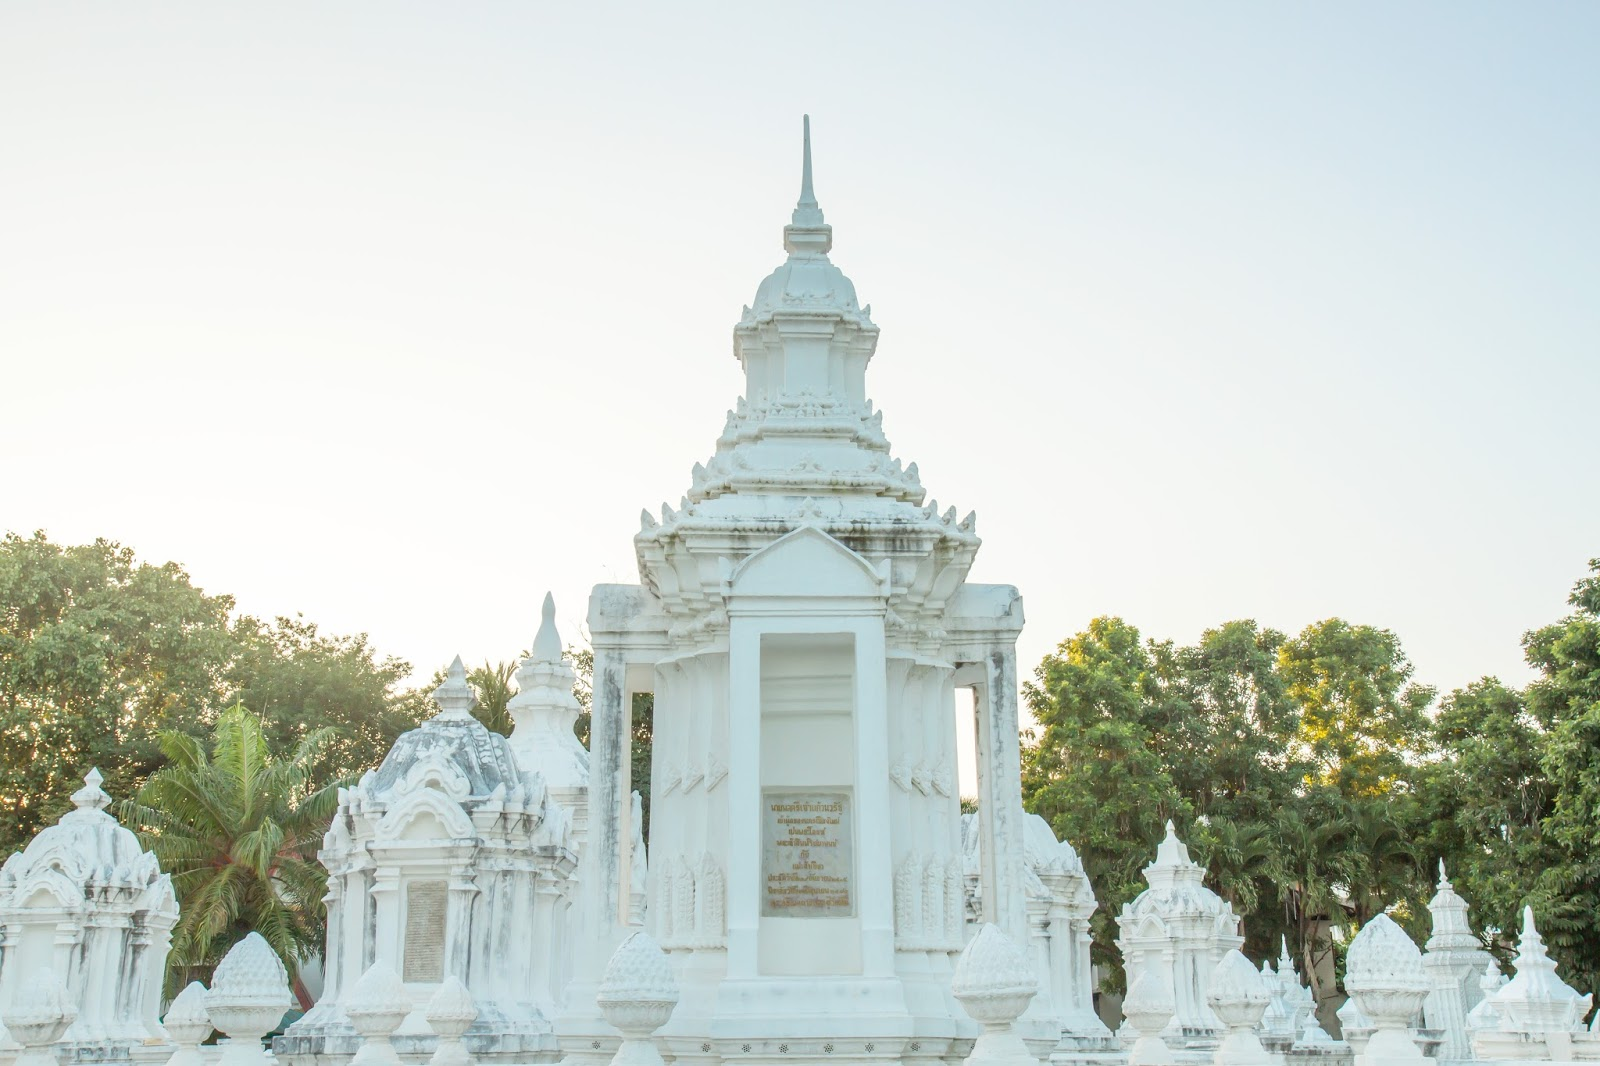 White temples, chiang mai, thailand